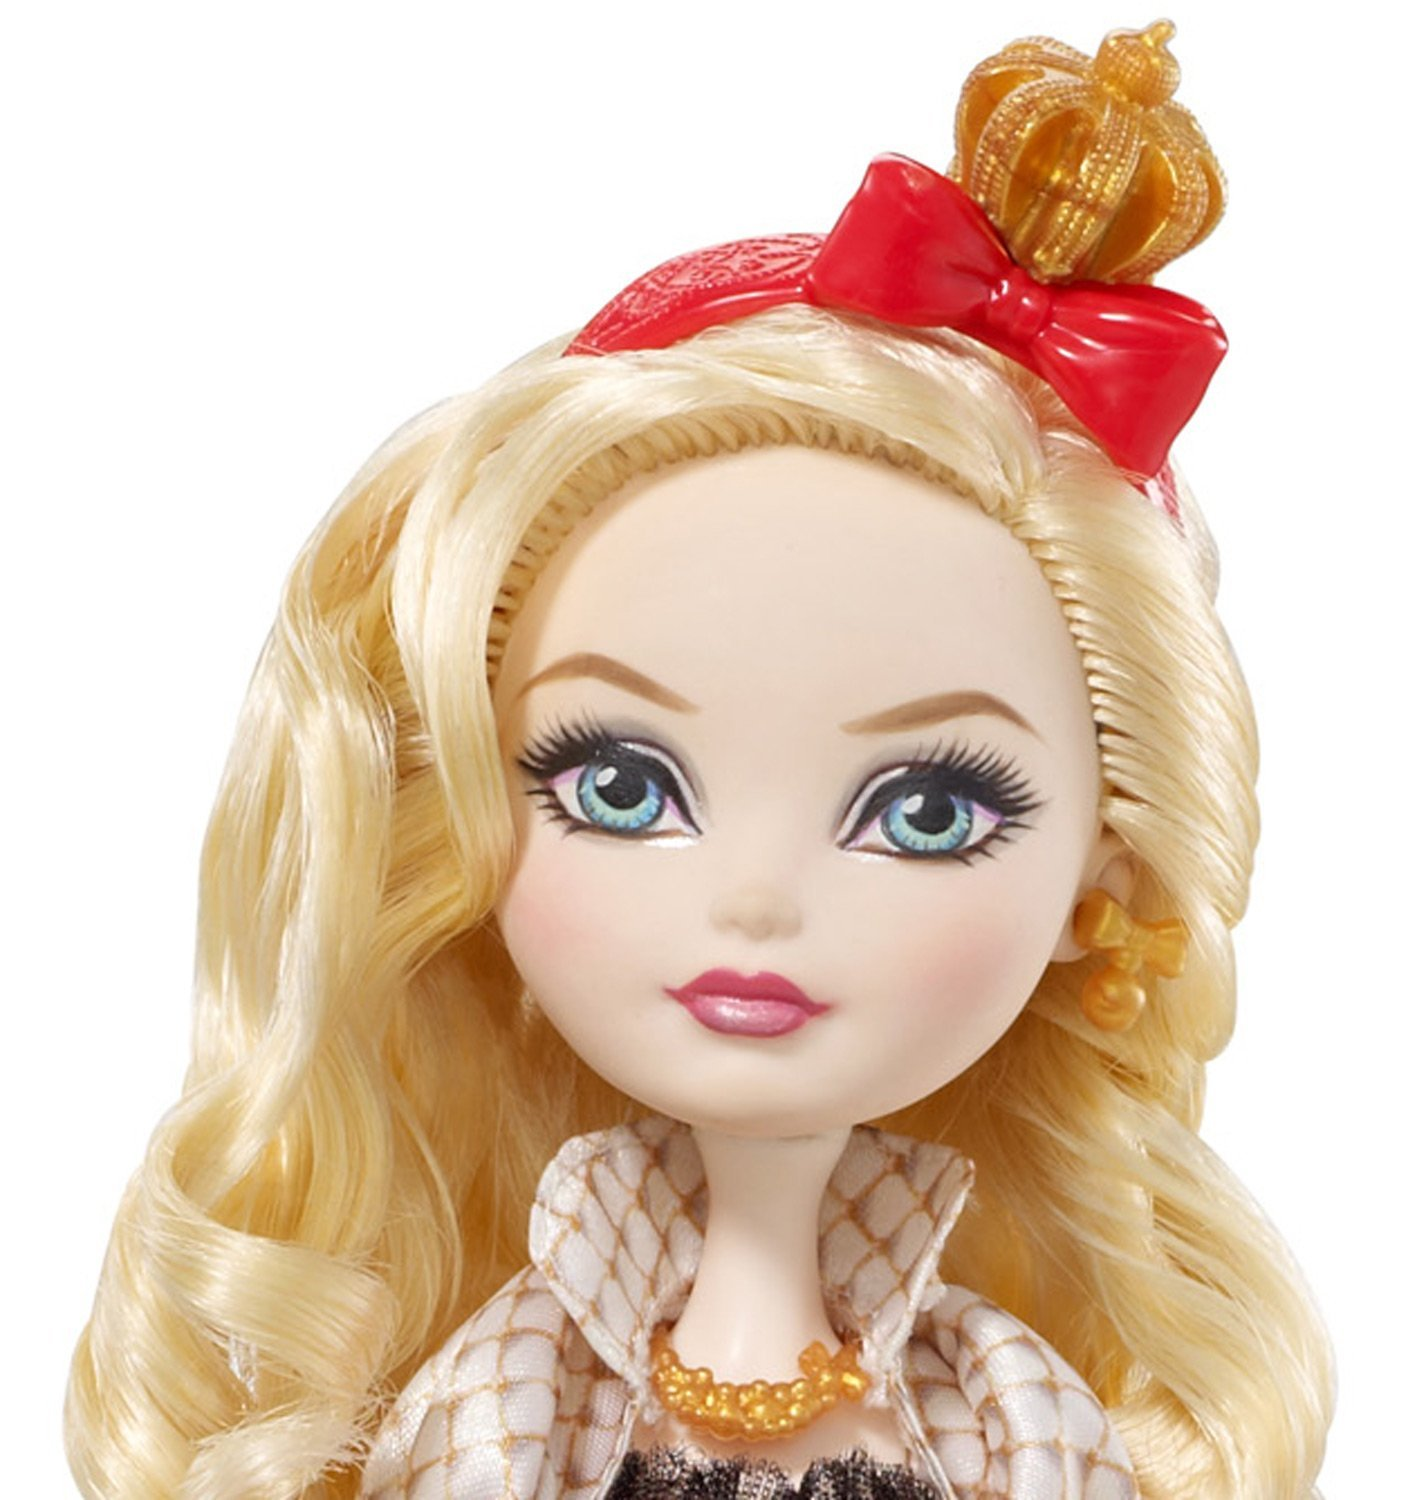 ����� EVER AFTER HIGH ����� ���� ����, ������� �����